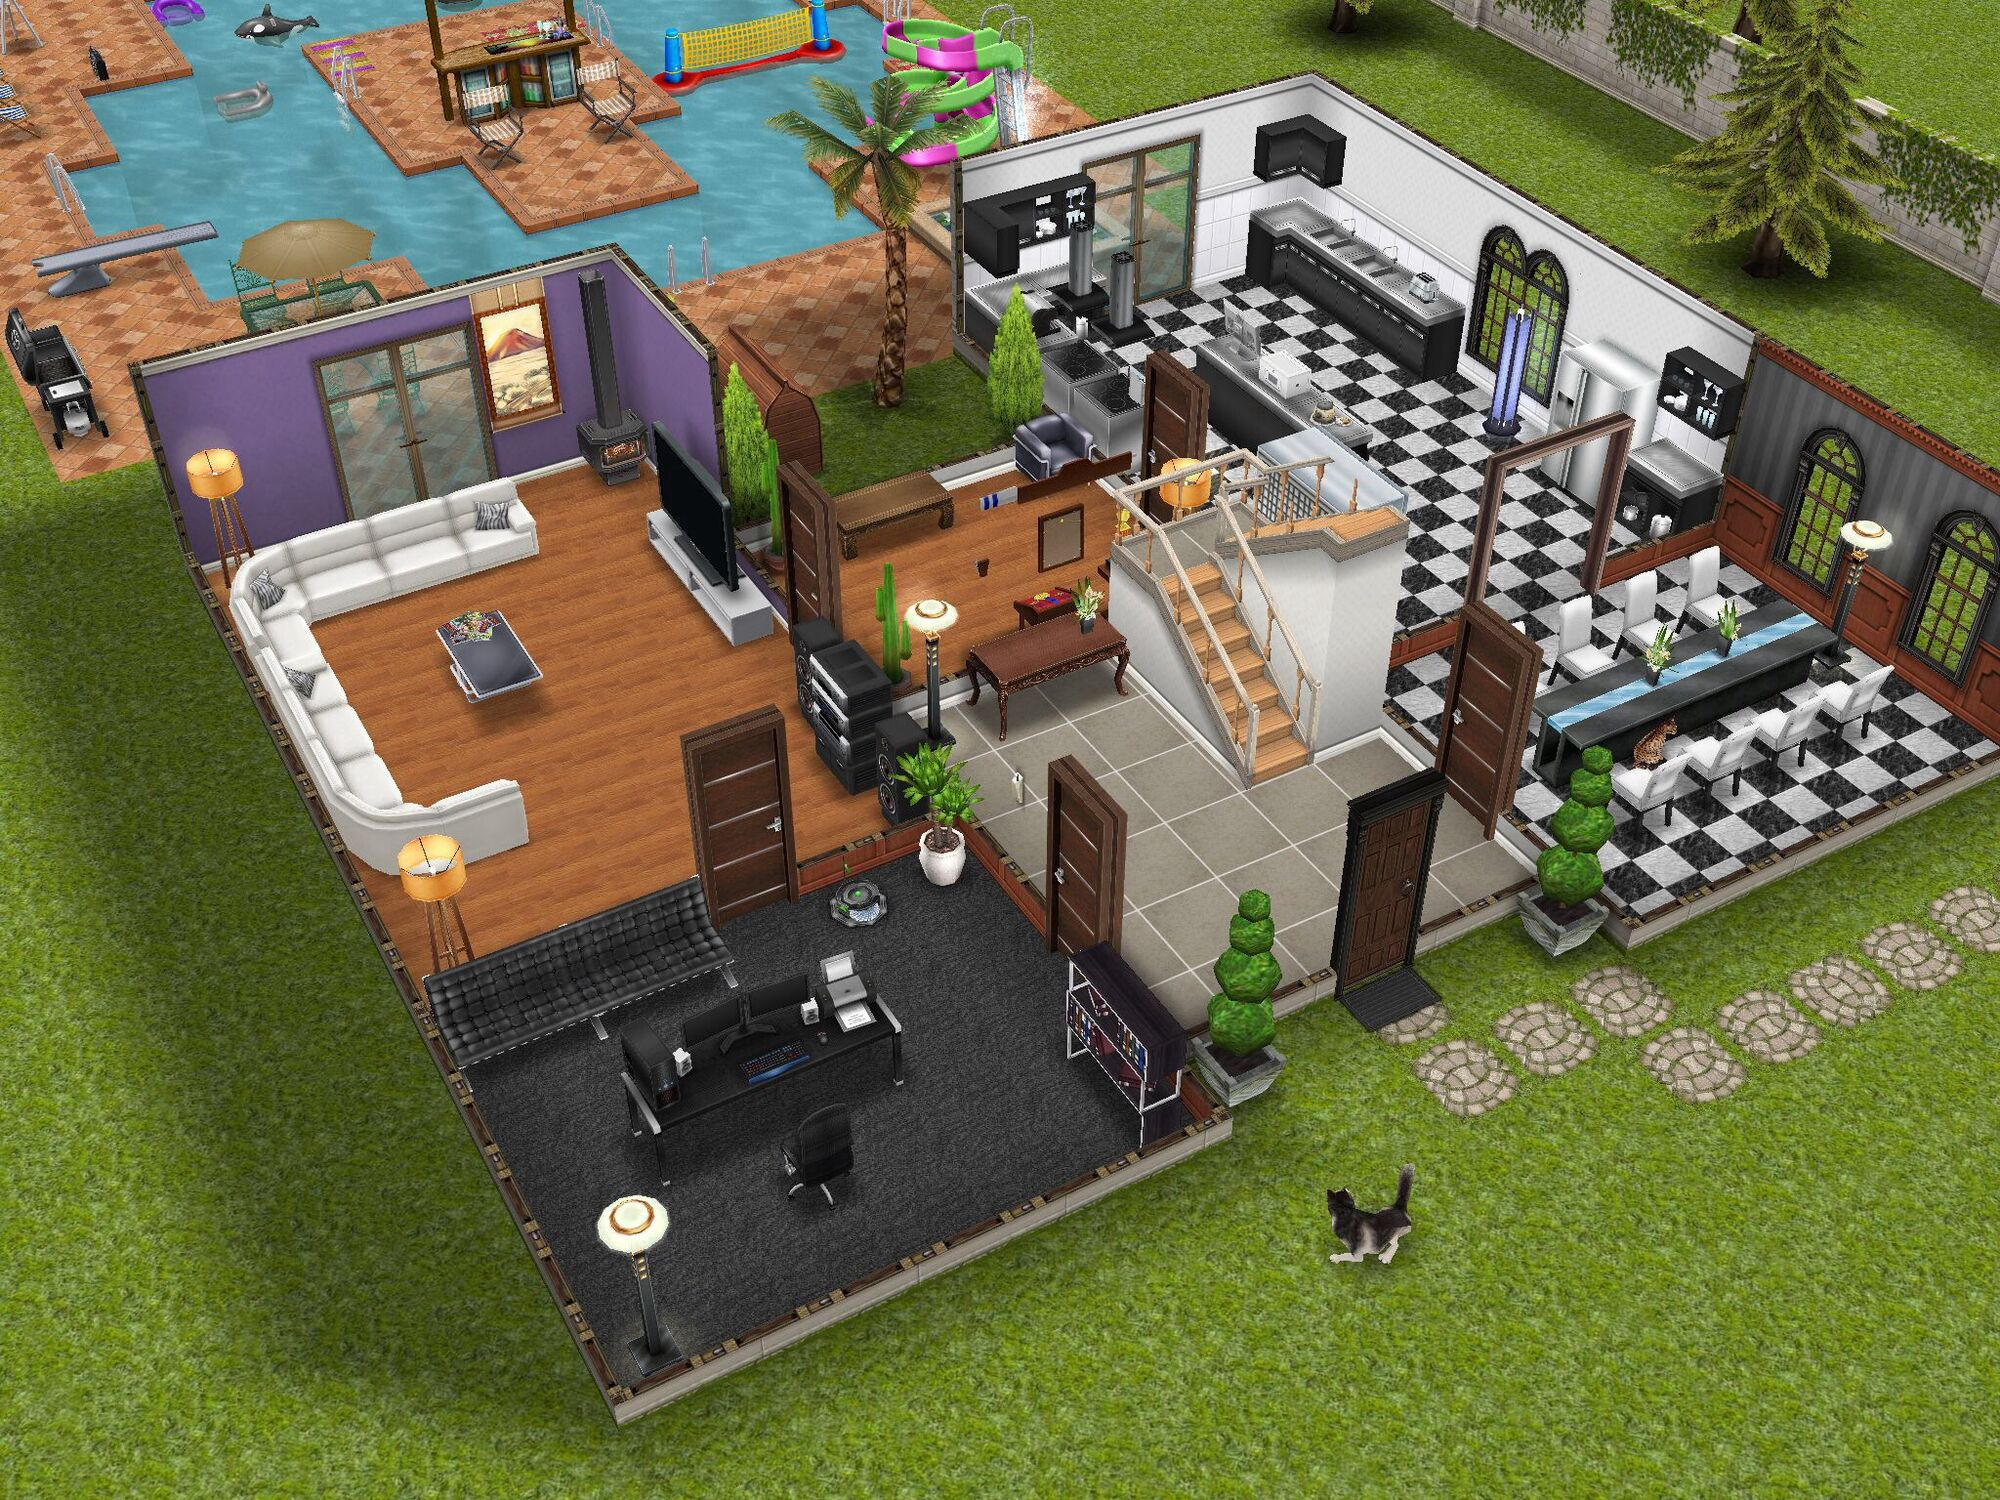 sims freeplay movie studio how to play wisely